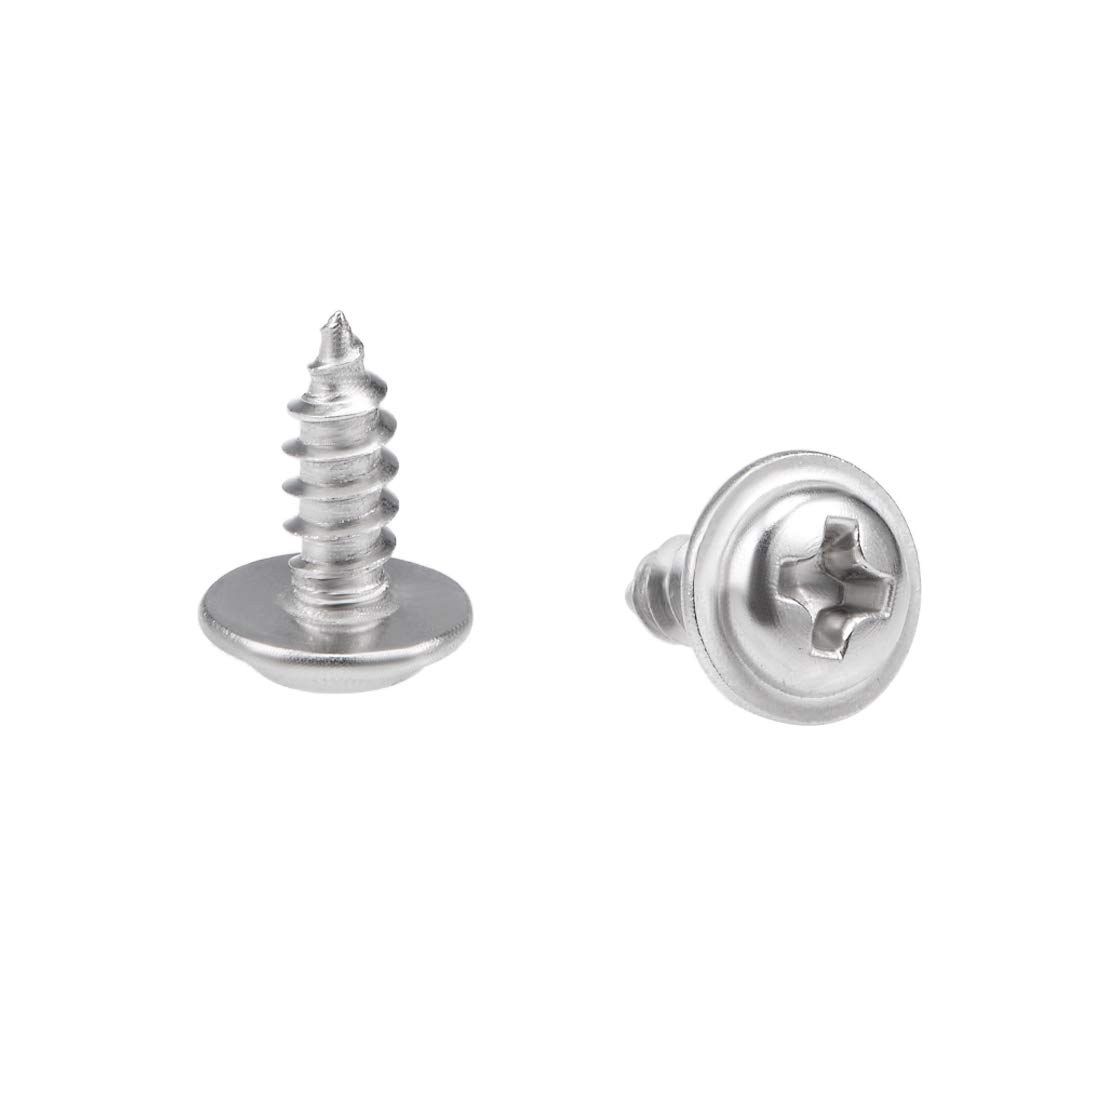 uxcell 2.6x8mm Self Tapping Screws Phillips Pan Head with Washer Screw 304 Stainless Steel Fasteners Bolts 50Pcs